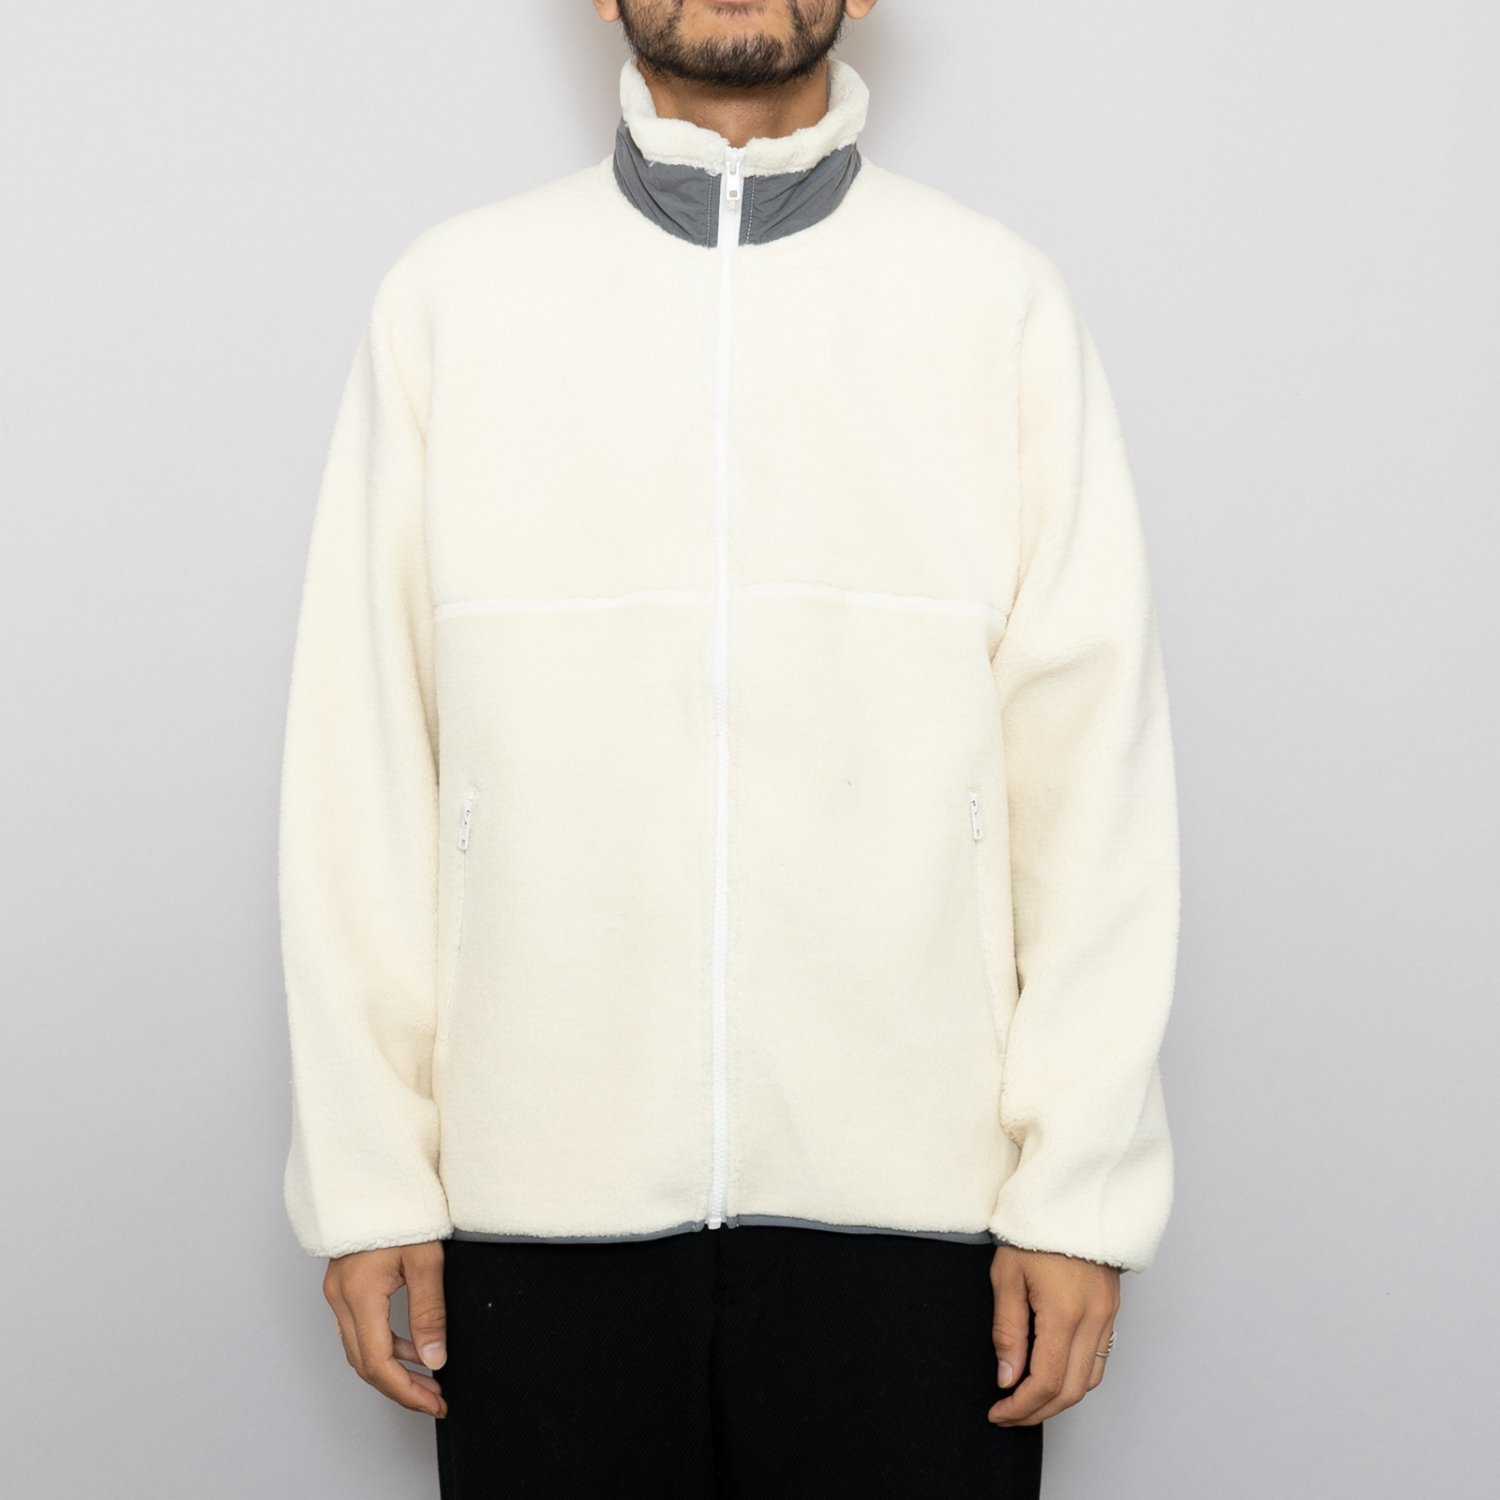 Graphpaper * Wool Boa Zip Up Blouson * White